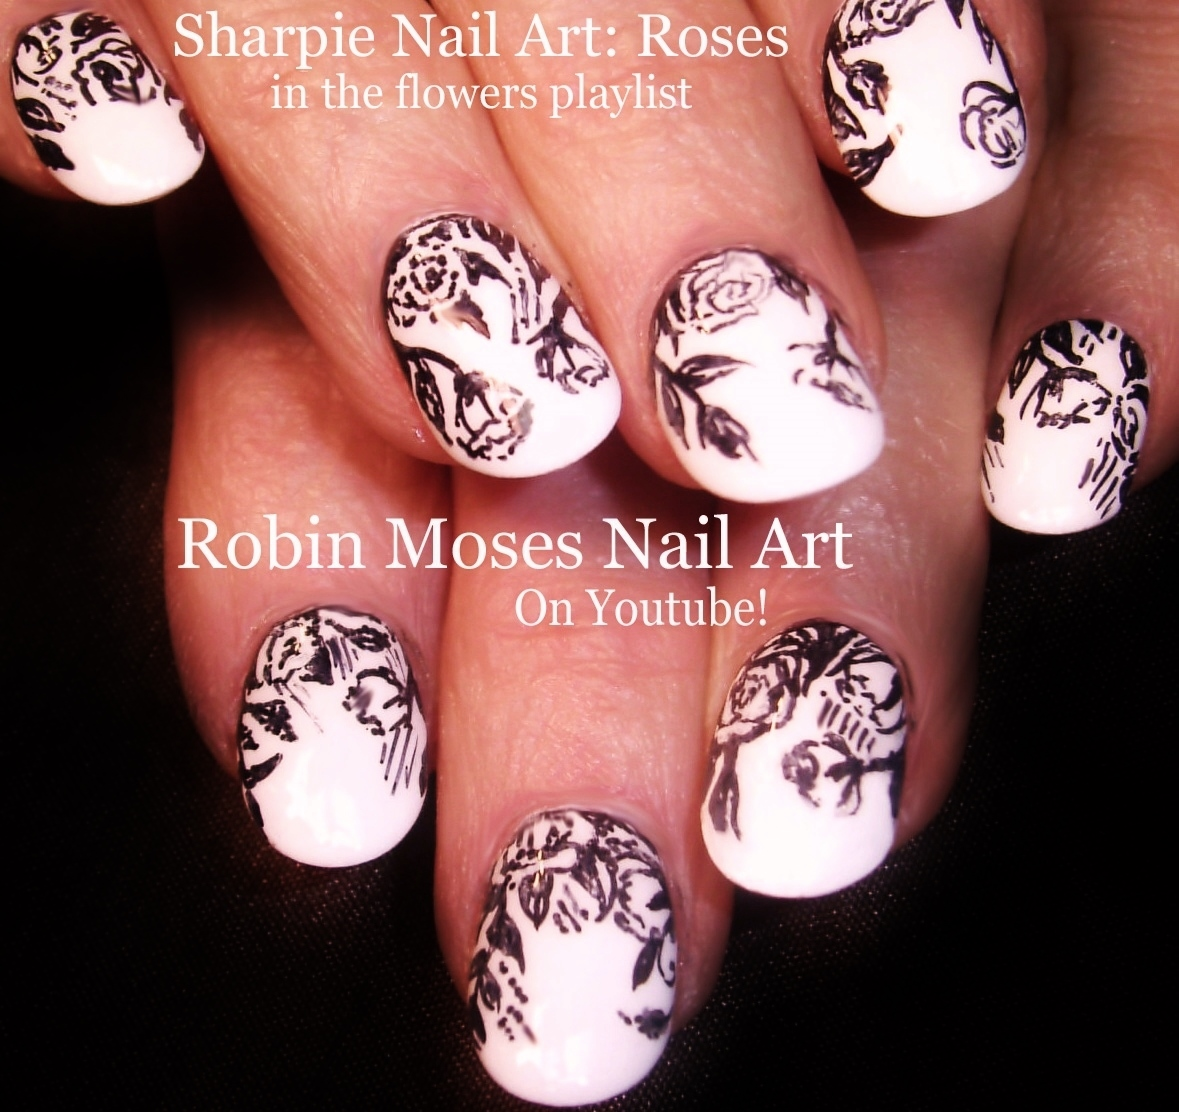 Rose Nail Art Tutorial: Robin Moses Nail Art: Rosegold Nails. How To Paint Roses